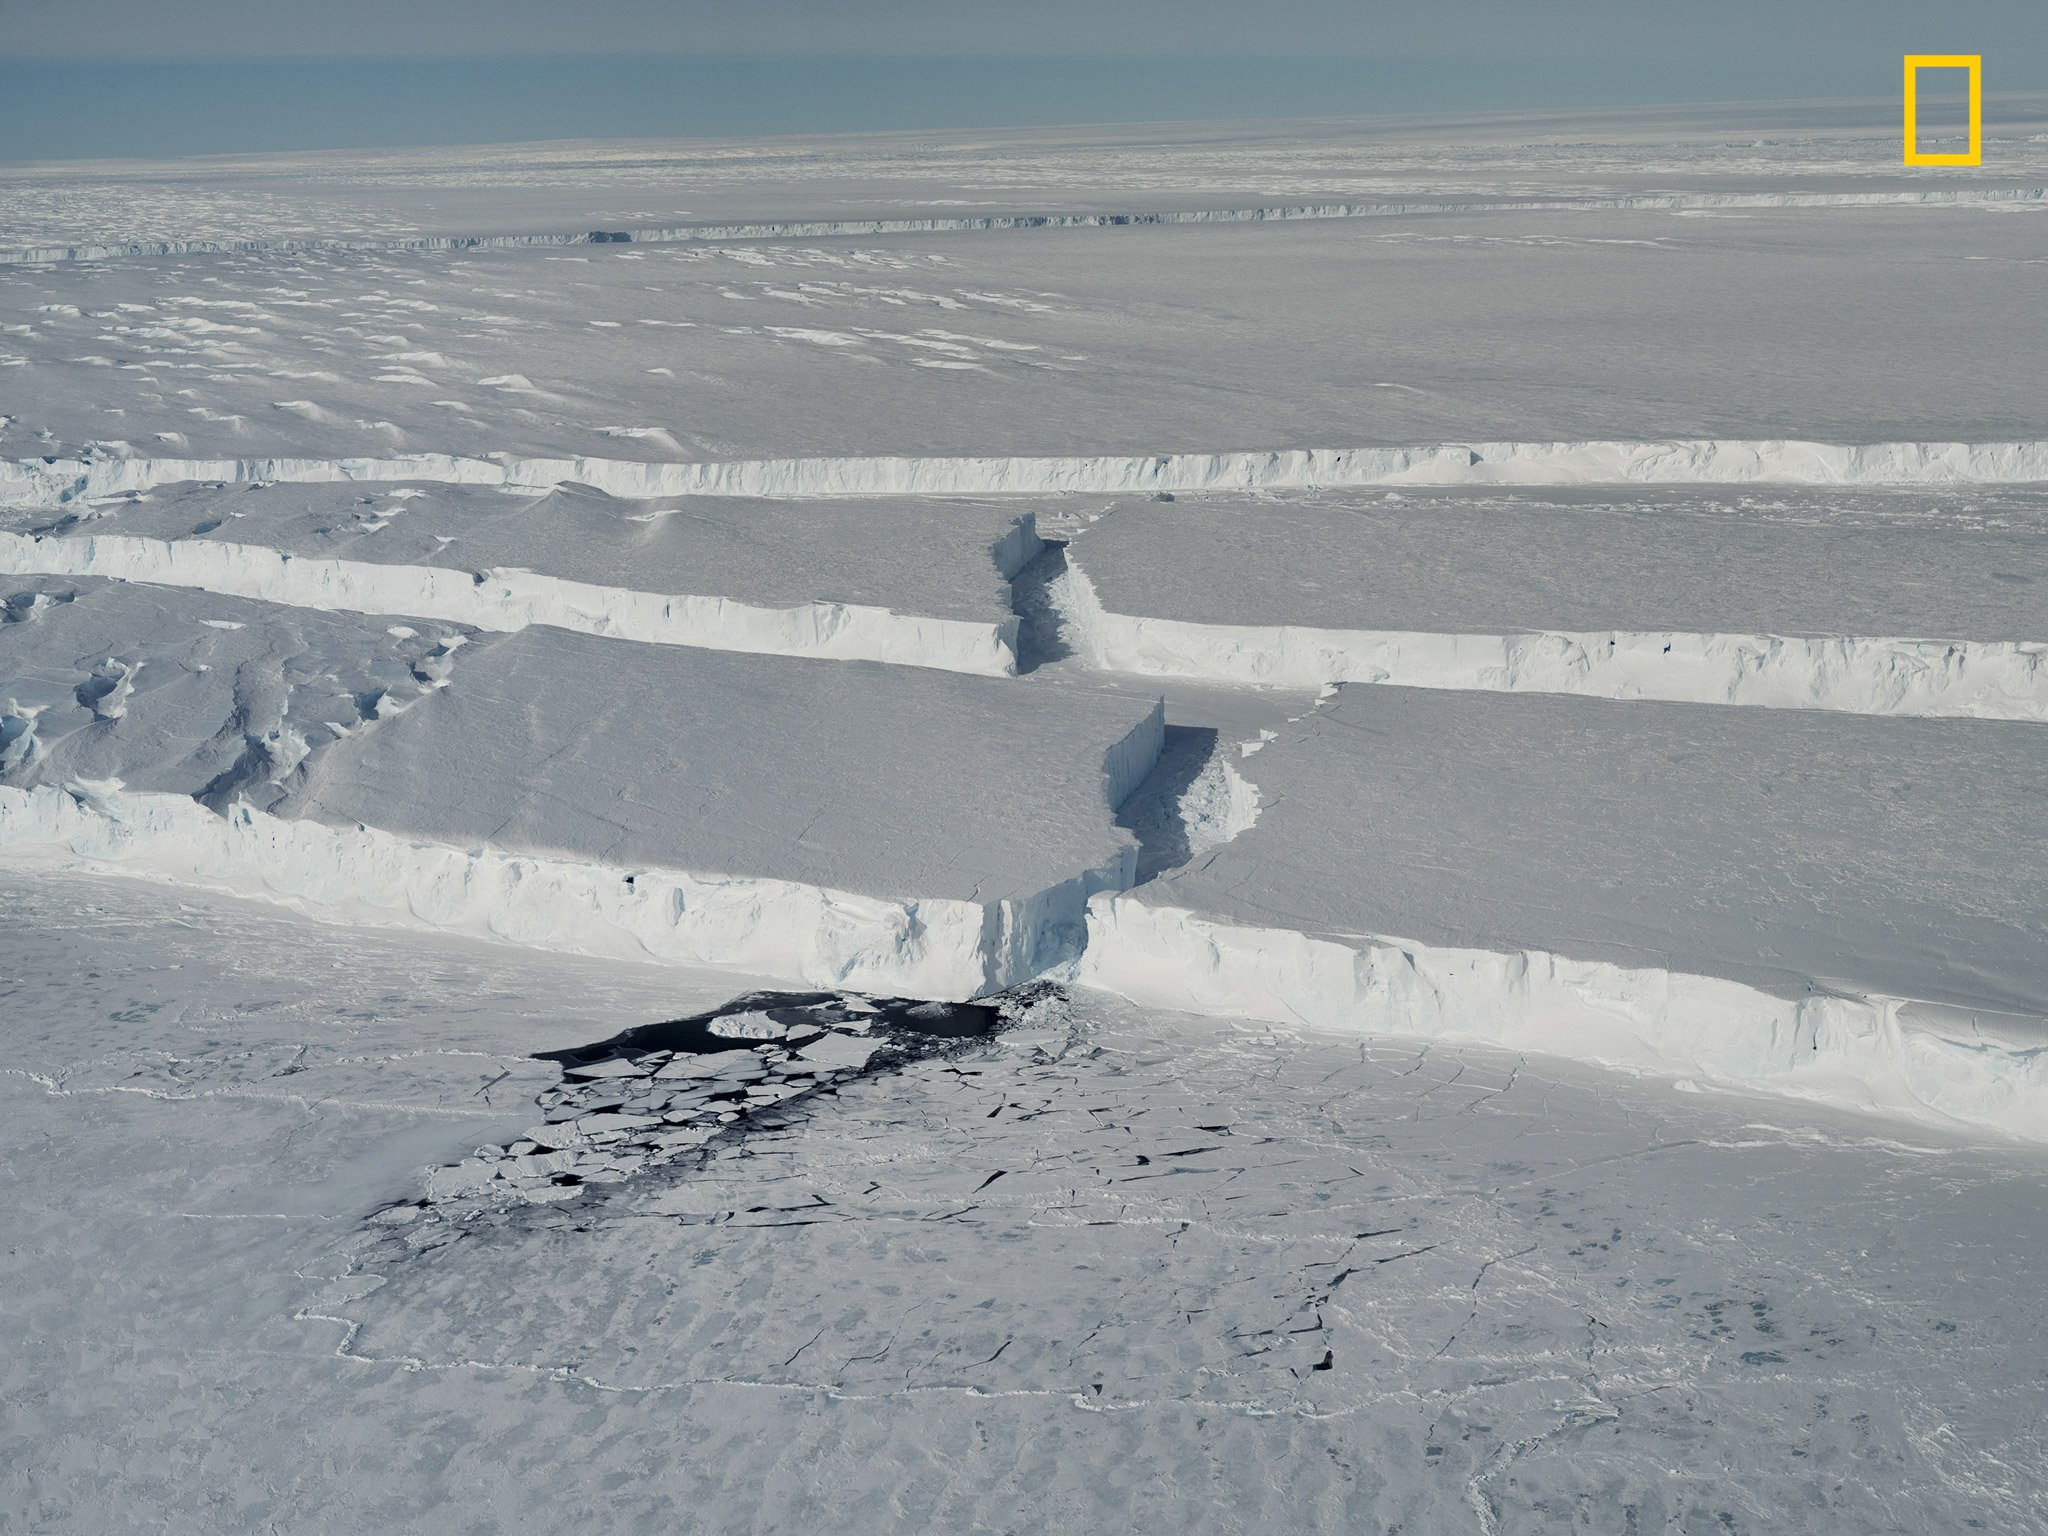 """NG News - exclusive photos: A giant iceberg breaks off Antarctica 001 Curving ice canyons mark the edge of the new iceberg, dubbed B-46, as it breaks off the thick, floating ice shelf of the Pine Island Glacier in West Antarctica. In the foreground lies broken sea ice on the dark surface of the Amundsen Sea. PERMITTED USE: This image may be downloaded or is otherwise provided at no charge for one-time use for coverage or promotion of the National Geographic article, """"Exclusive photos: A giant iceberg breaks off Antarctica"""", and exclusively in conjunction thereof. No copying, distribution or archiving permitted. Sub-licensing, sale or resale is prohibited. REQUIRED CREDIT AND CAPTION: All image uses must bear the copyright notice and be properly credited to the relevant photographer, as provided. Any uses in which the image appears without proper copyright notice, photographer credit and a caption referencing the article are subject to paid licensing Required, a link back to the original article: https://www.nationalgeographic.com/environment/2018/11/exclusive-first-pictures-of-iceberg-five-times-the-size-of-manhattan/ Images may be found here: **Branding May Not Be Removed** Mandatory Usage Requirements: You may use a Max of 2 Images online 1. Must include mandatory photo credit: Photographs by Thomas Prior / National Geographic 2. Must include prominent link back to the National Geographic story 3. Must include a mention that this is a National Geographic exclusive at the top of your piece Credit: Photographs by Thomas Prior / National Geographic"""